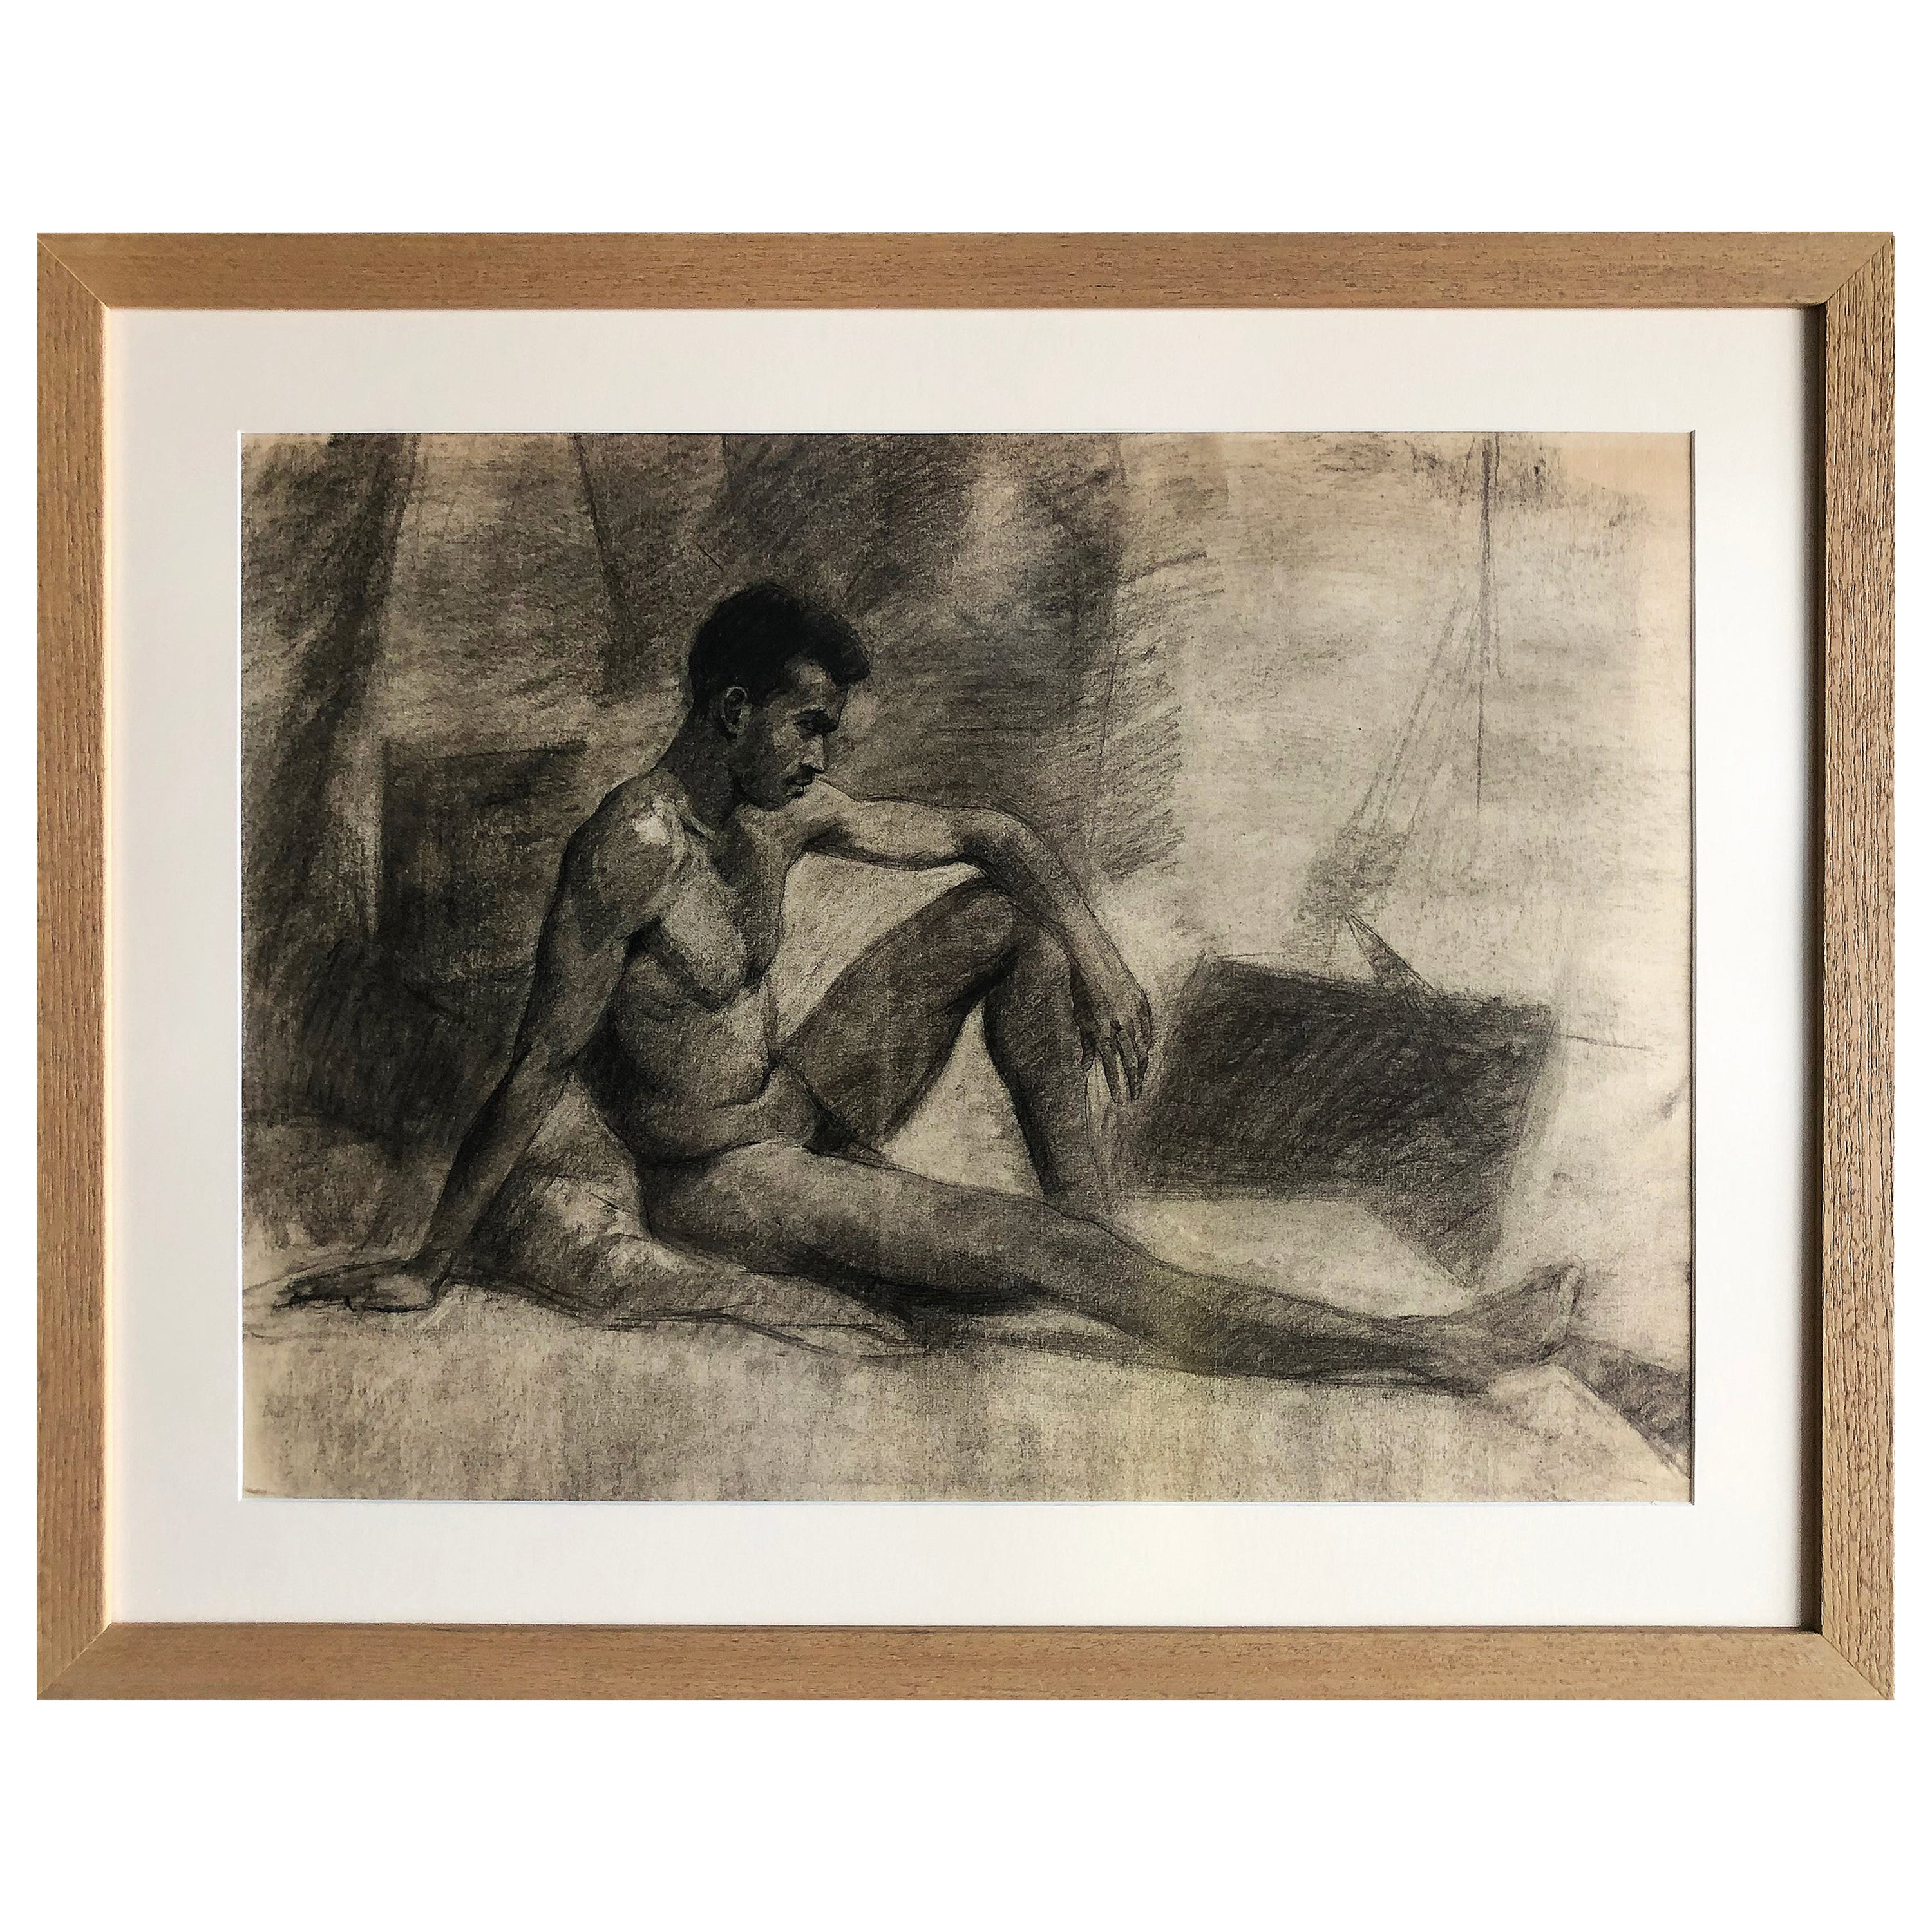 1940s Male Nude Art Study Drawing in Charcoal on Paper